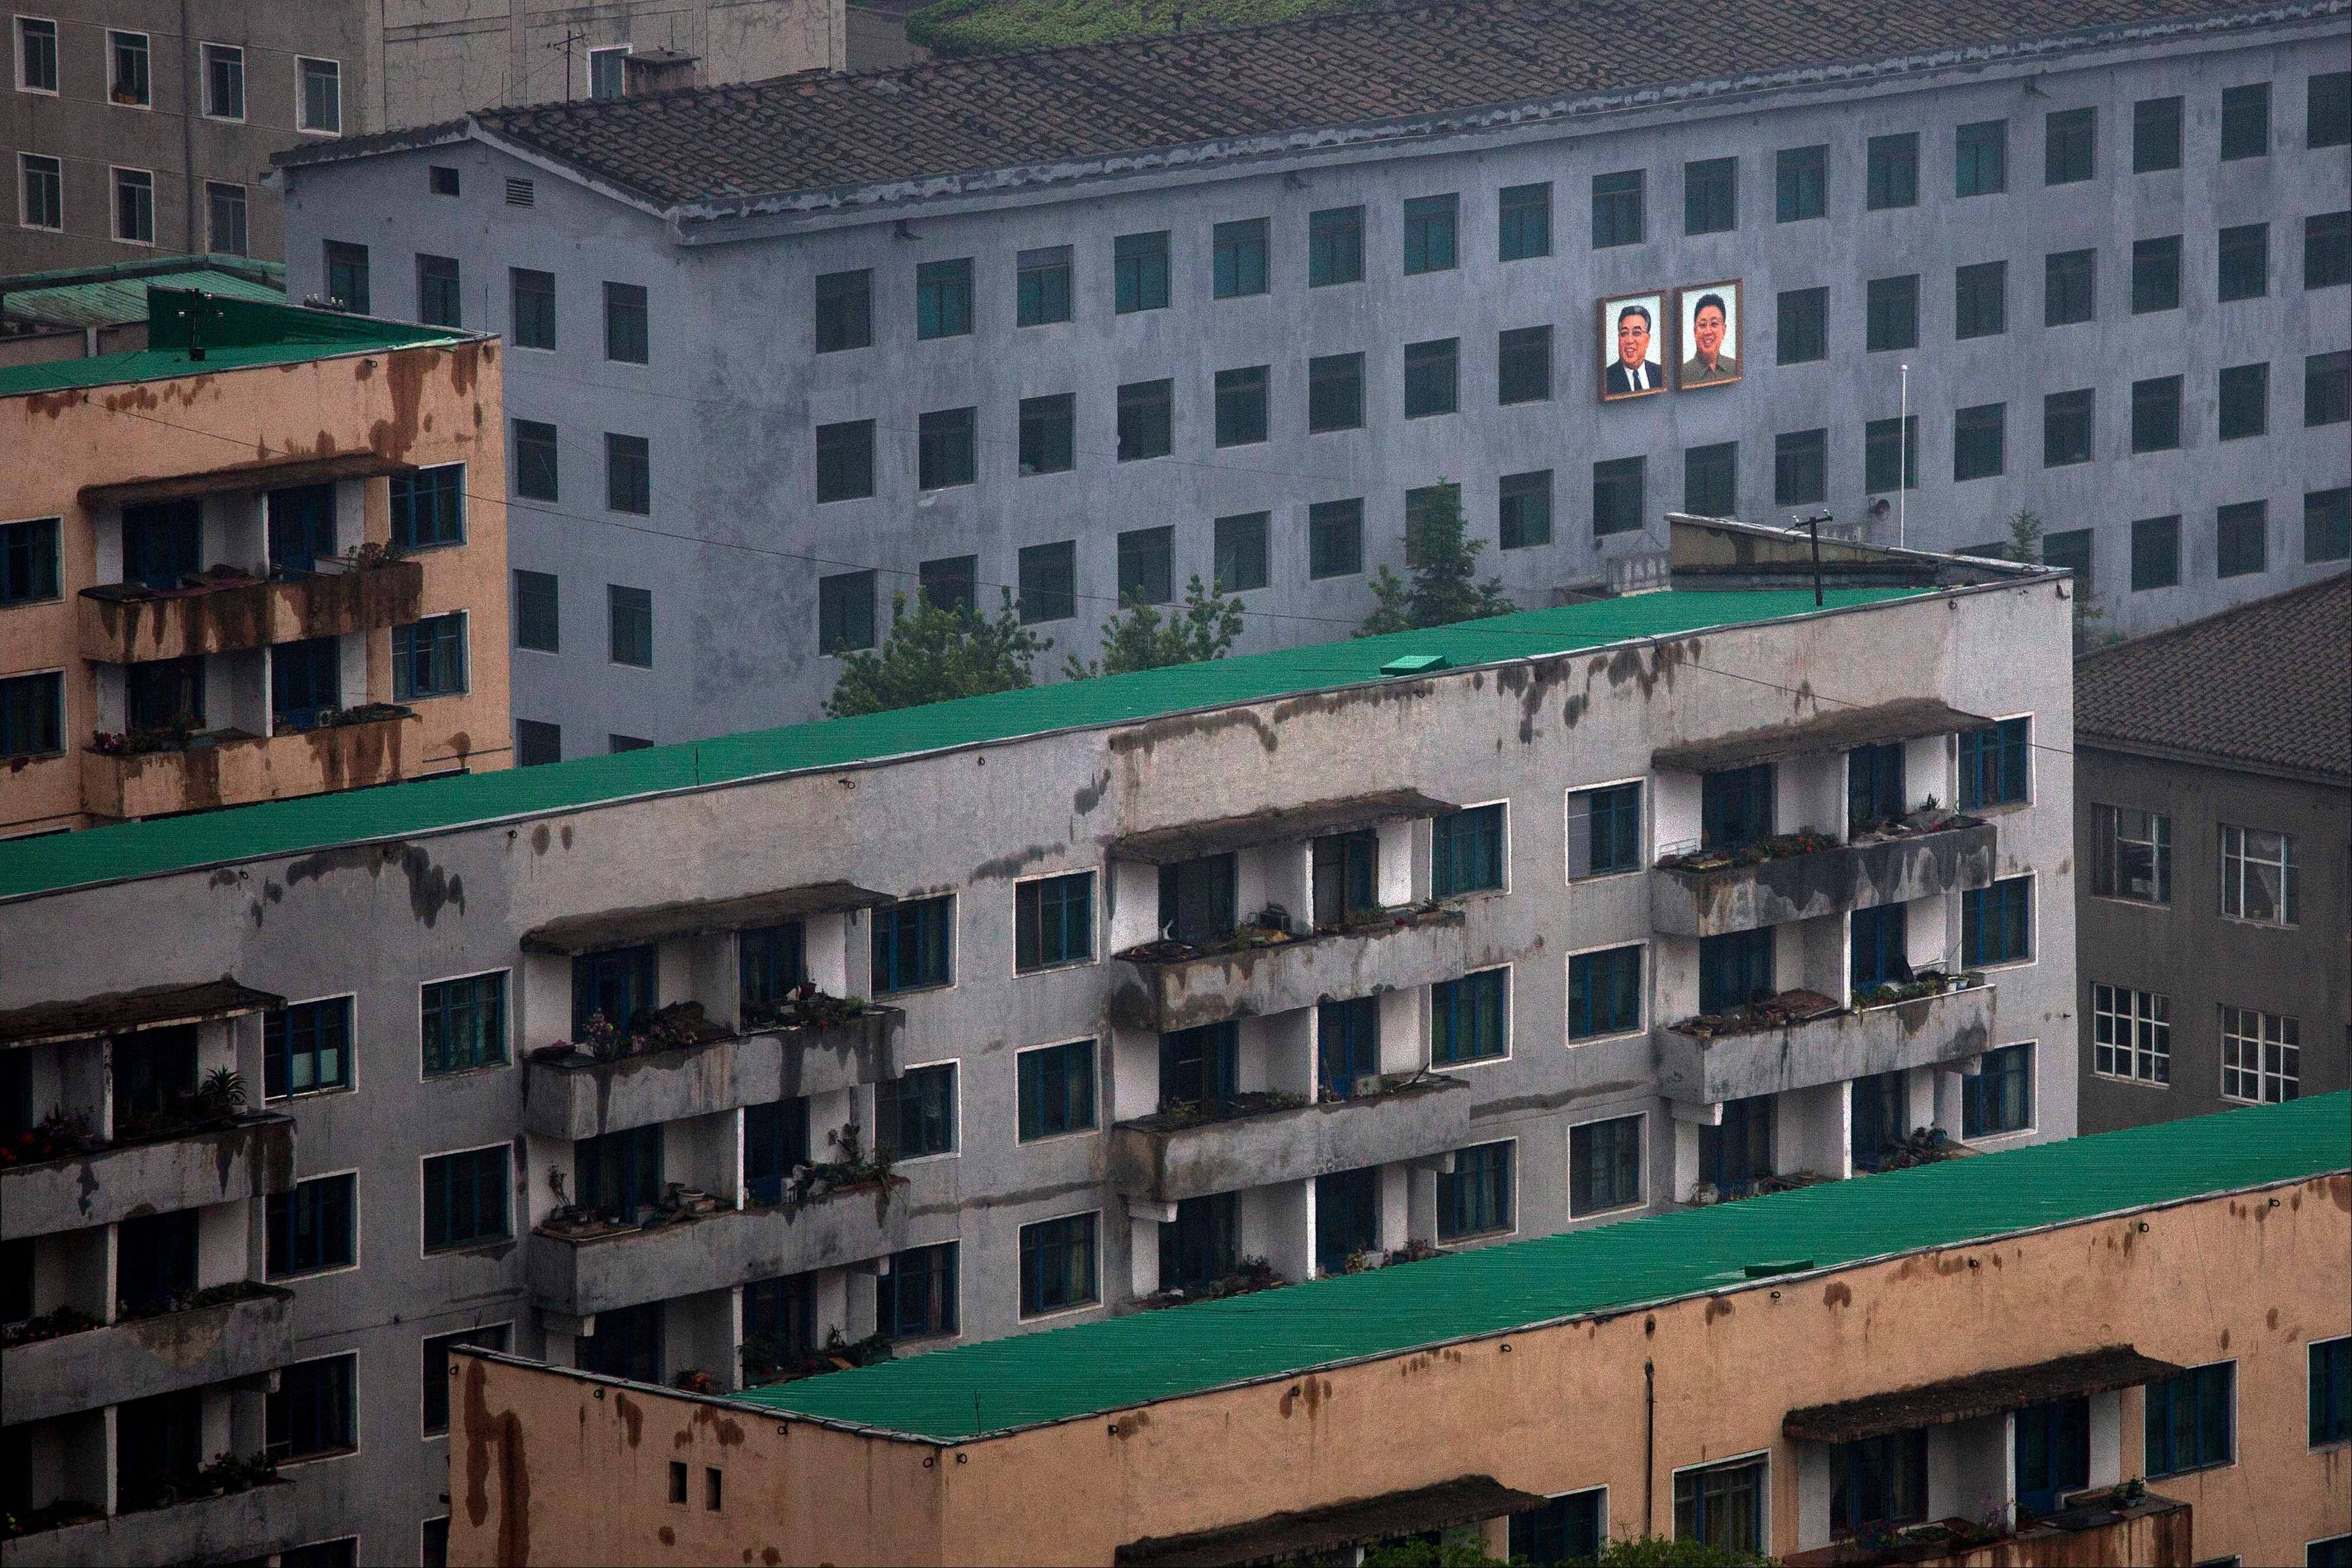 Portraits of the late North Korean leaders Kim Il Sung, left, and Kim Jong Il hang Saturday on the outside of a building in central Pyongyang, North Korea.